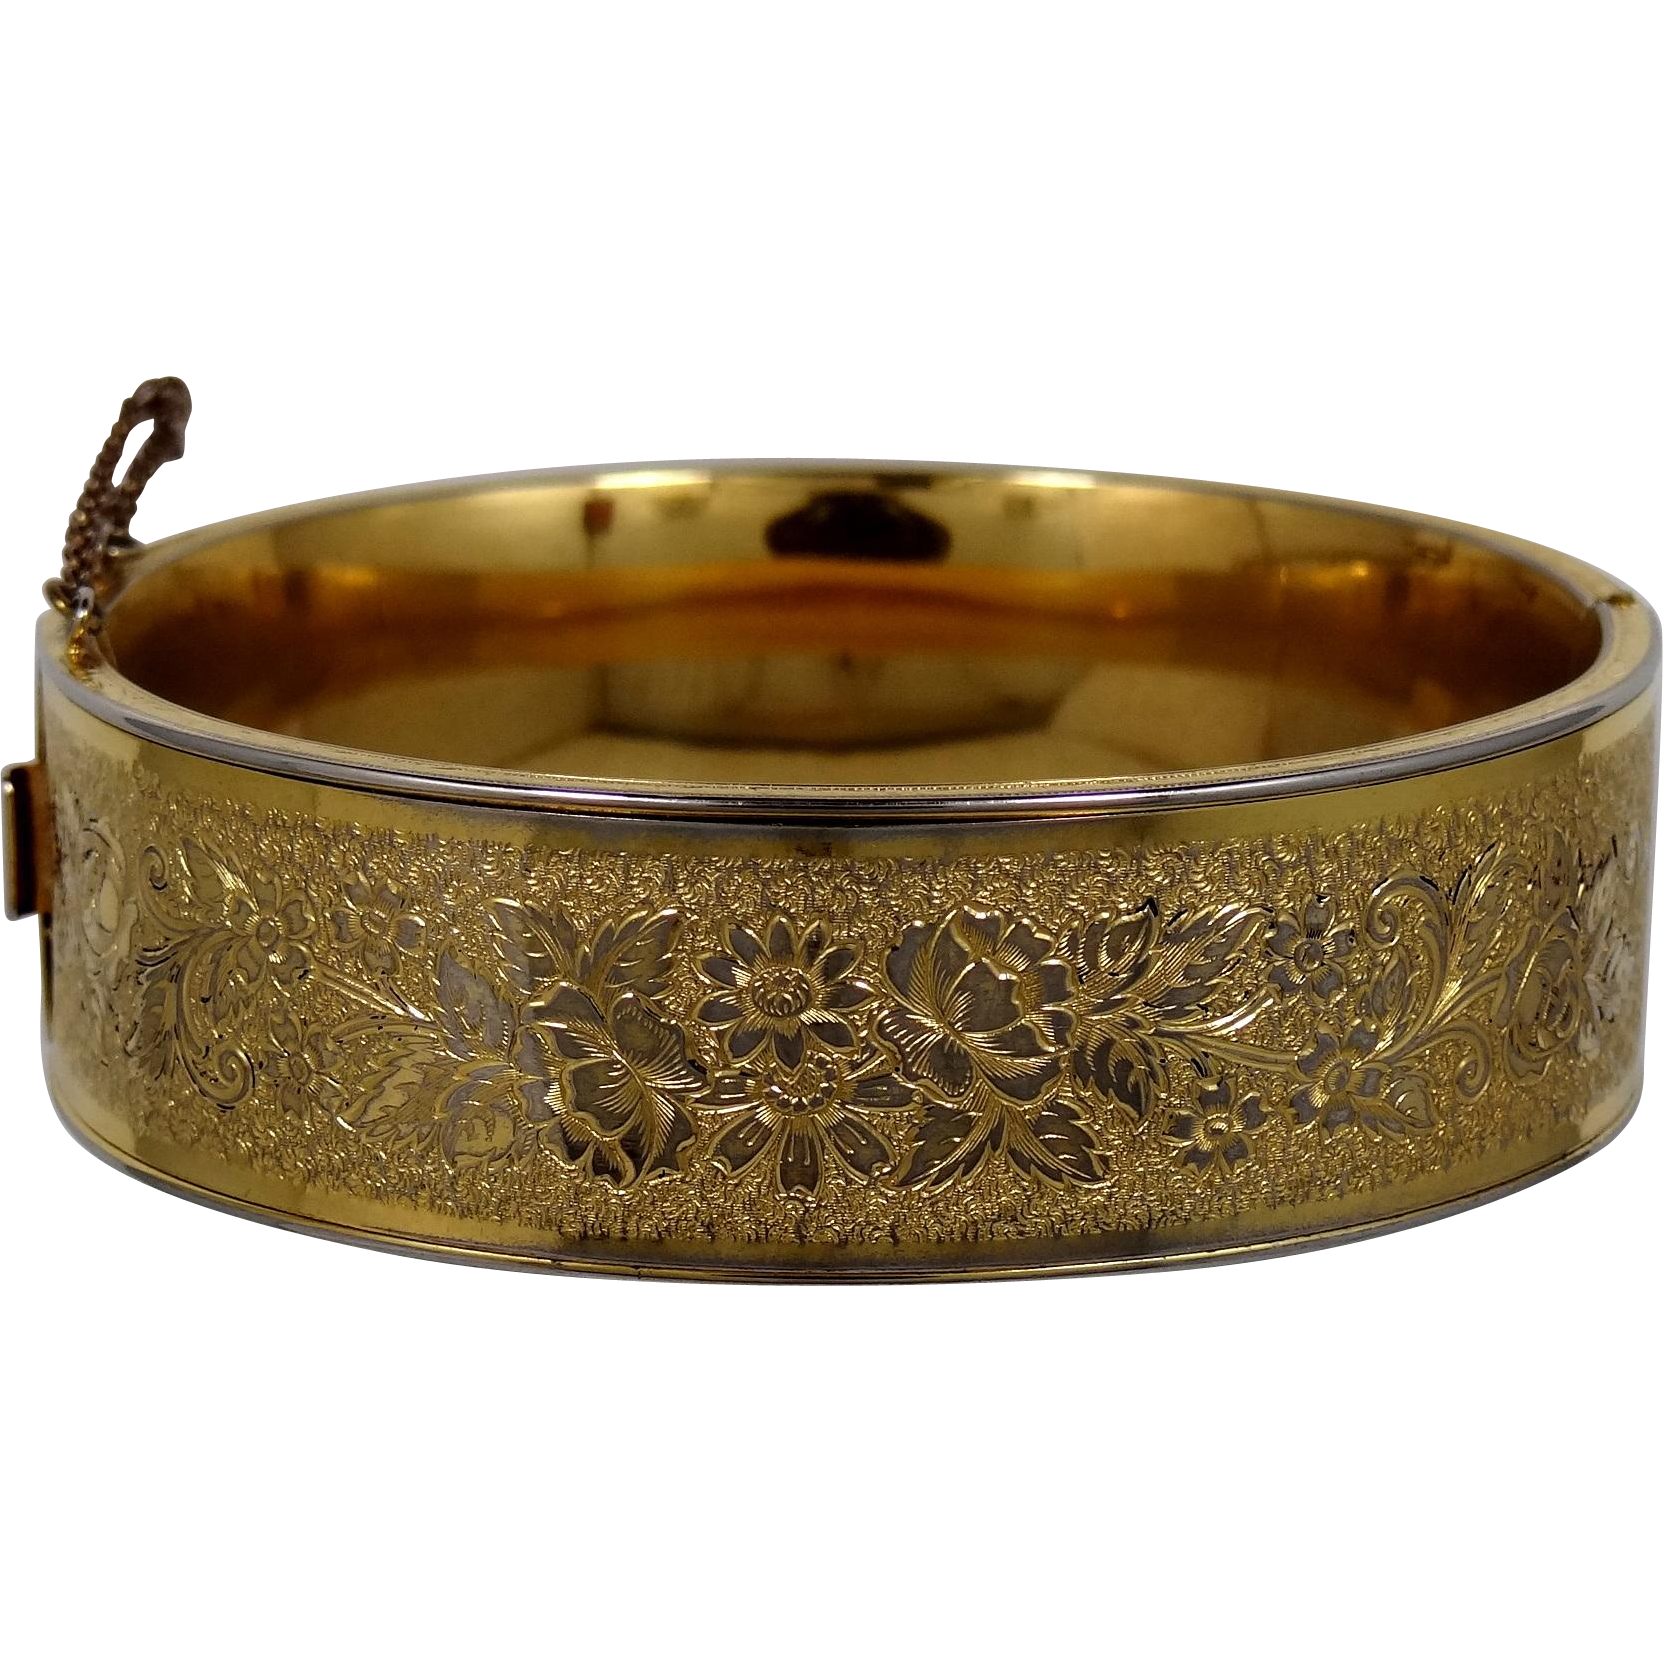 "1930's Binder Bros. 3/4"" Wide Gold Filled Etched Bangle Bracelet"